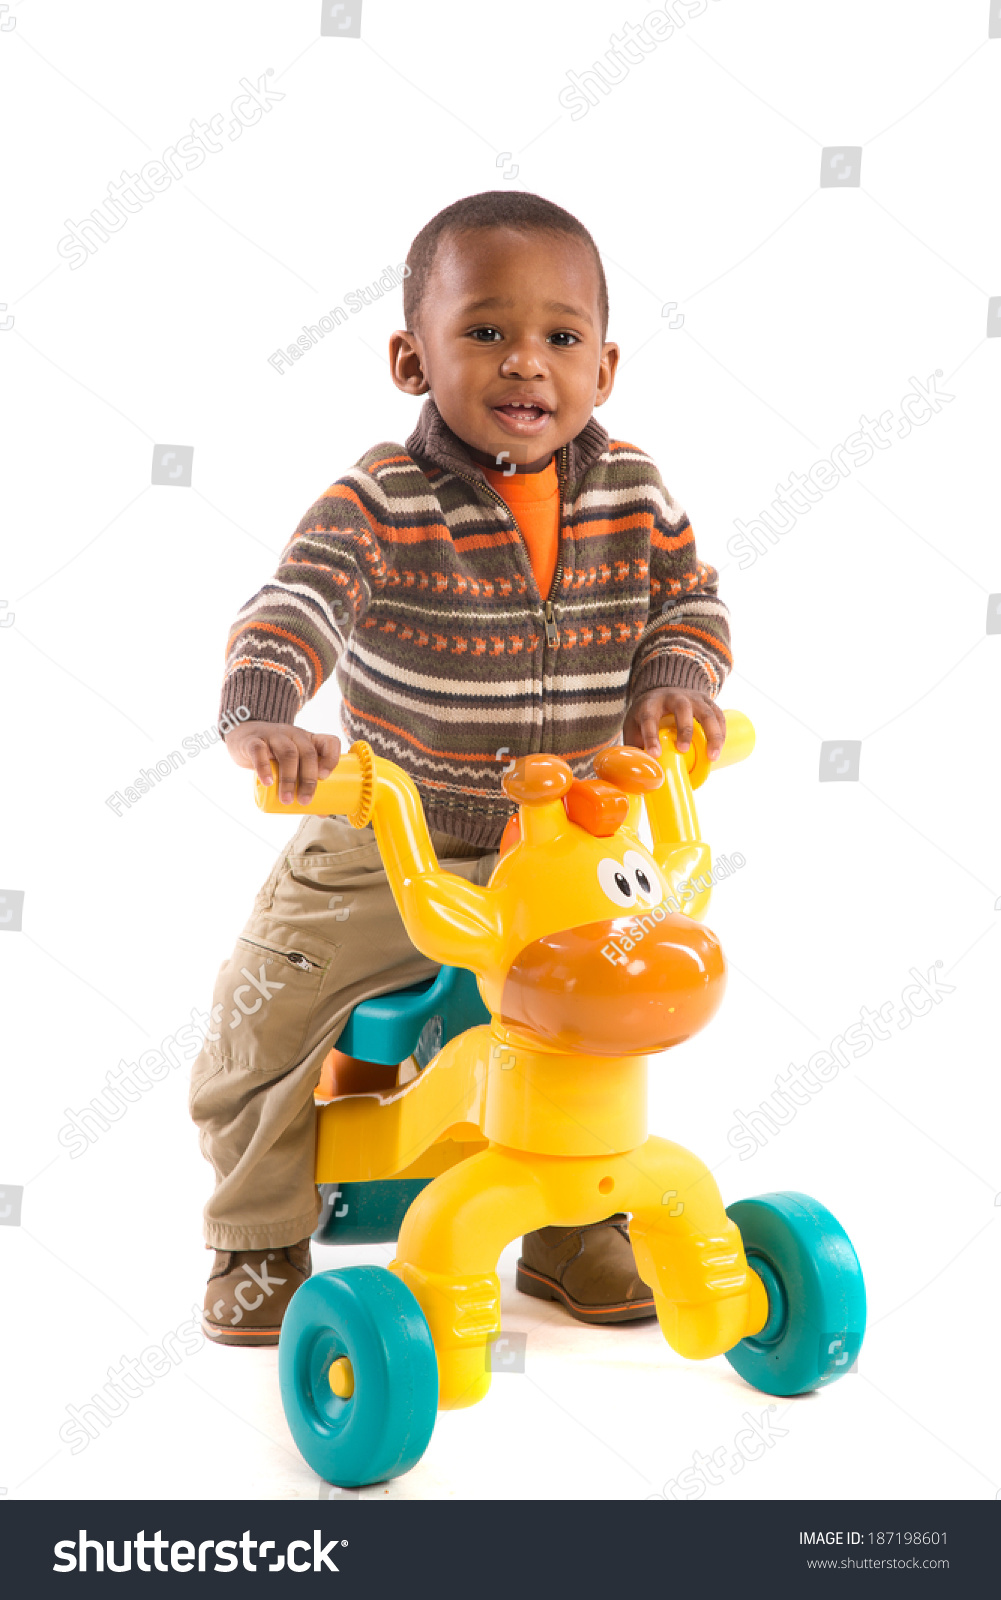 One Year Old Riding Toys : One year old boy riding toy tricycles isolated on white